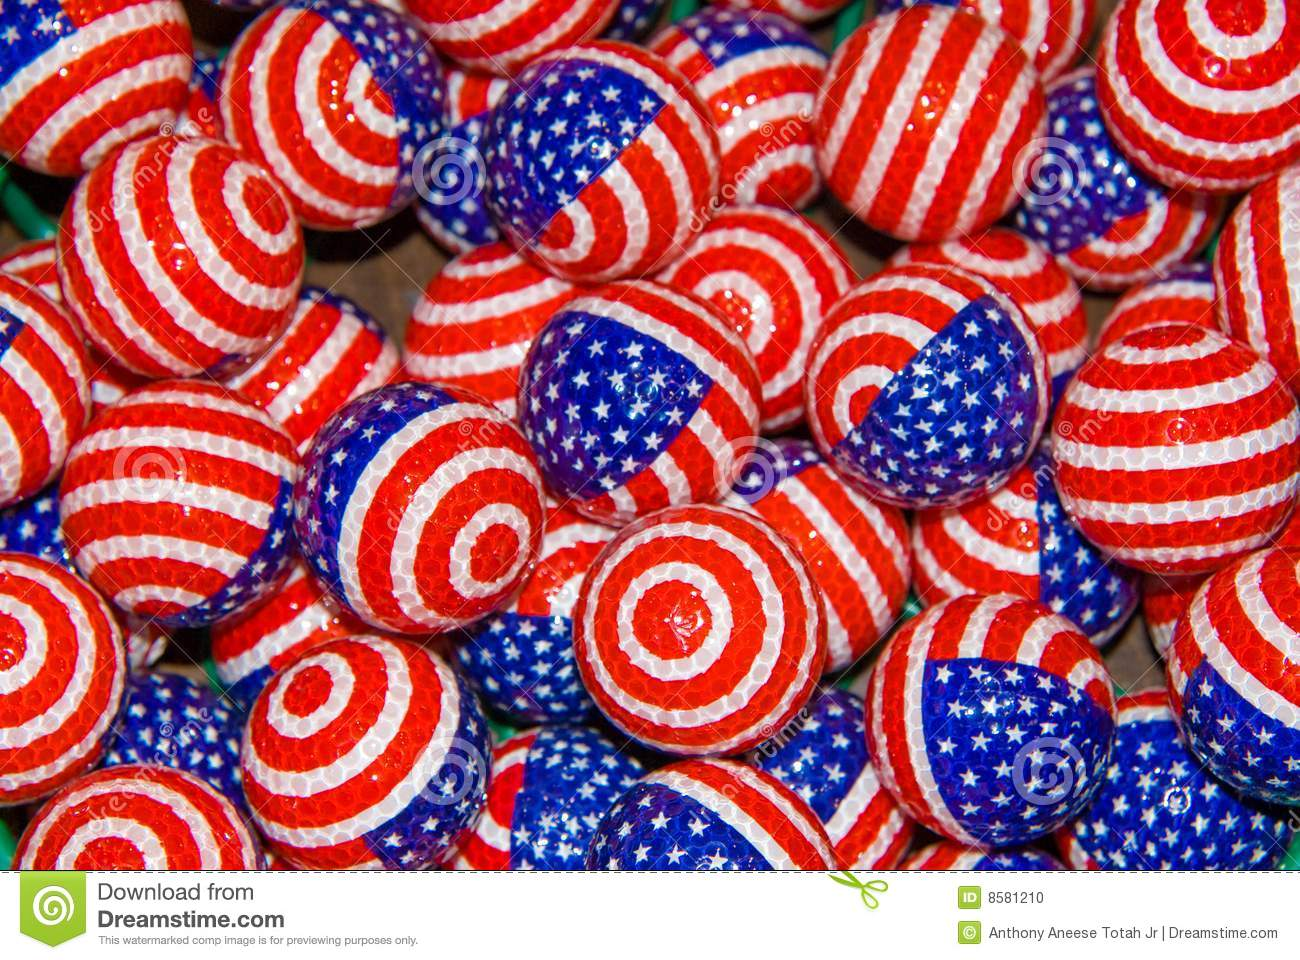 patriotic essay themes united states limited time offer buy it now dreamstime com